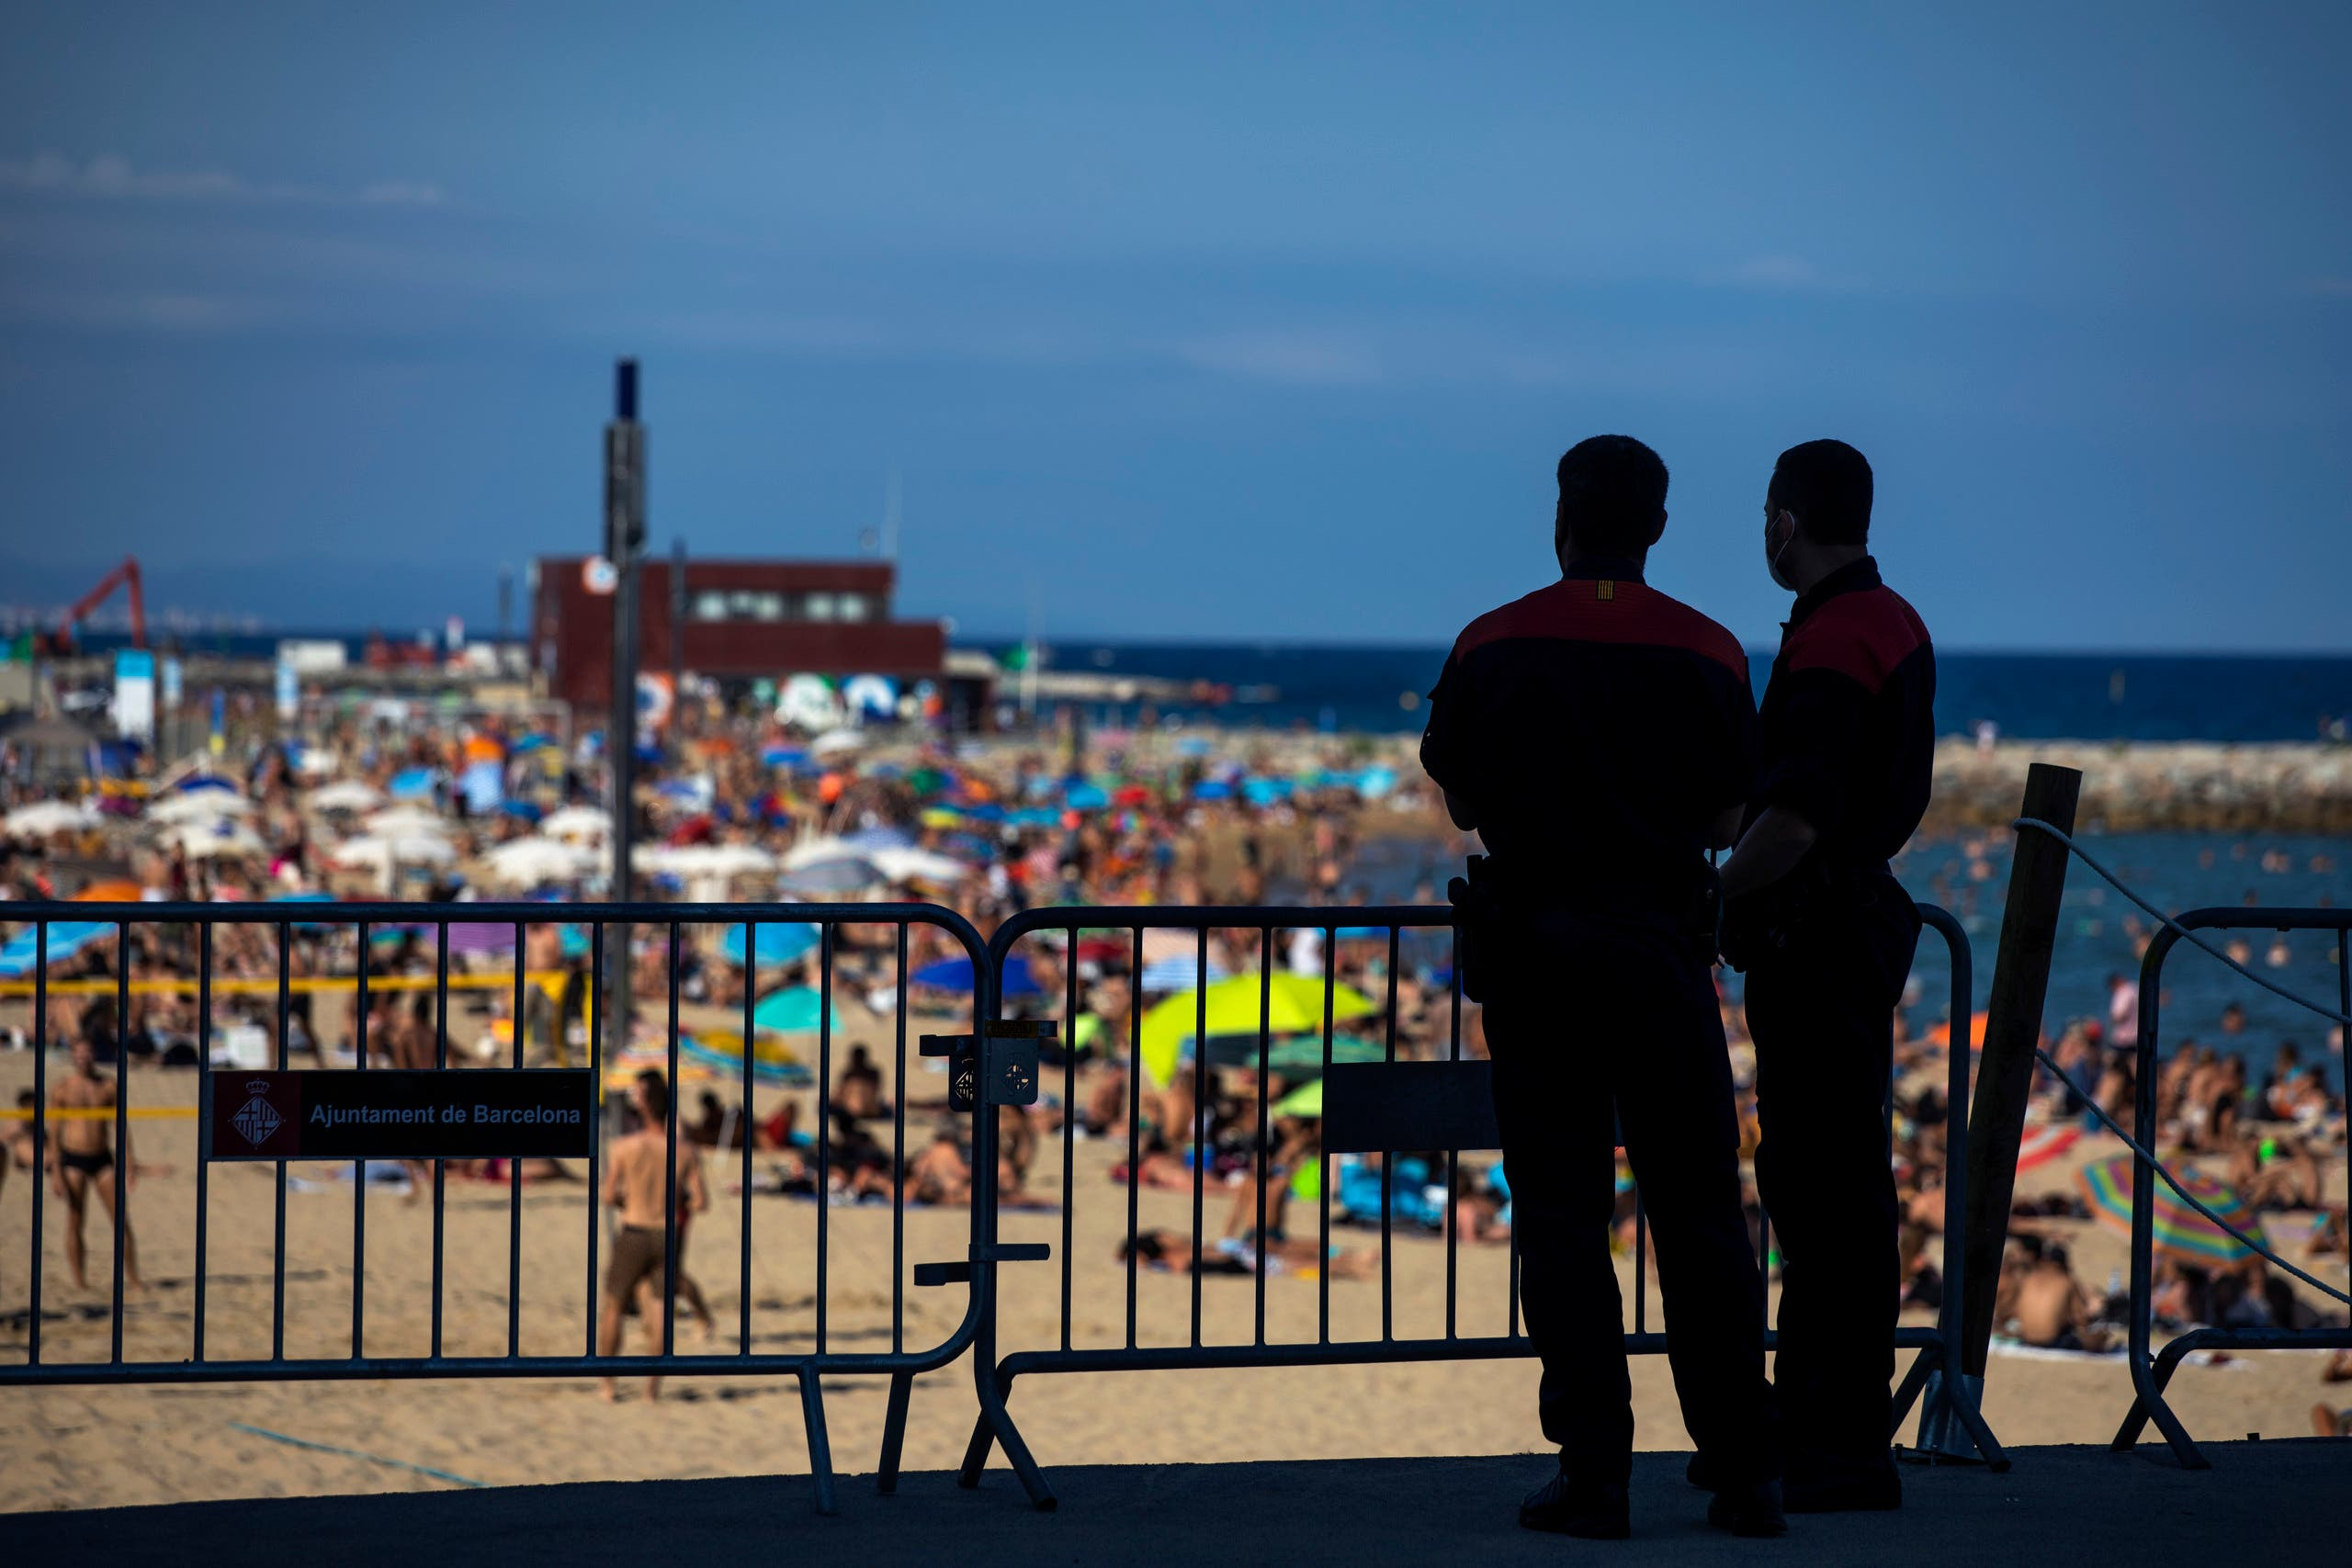 Police officers guard a barrier to stop people entering the beach, in Barcelona on July 18, 2020. (AP)